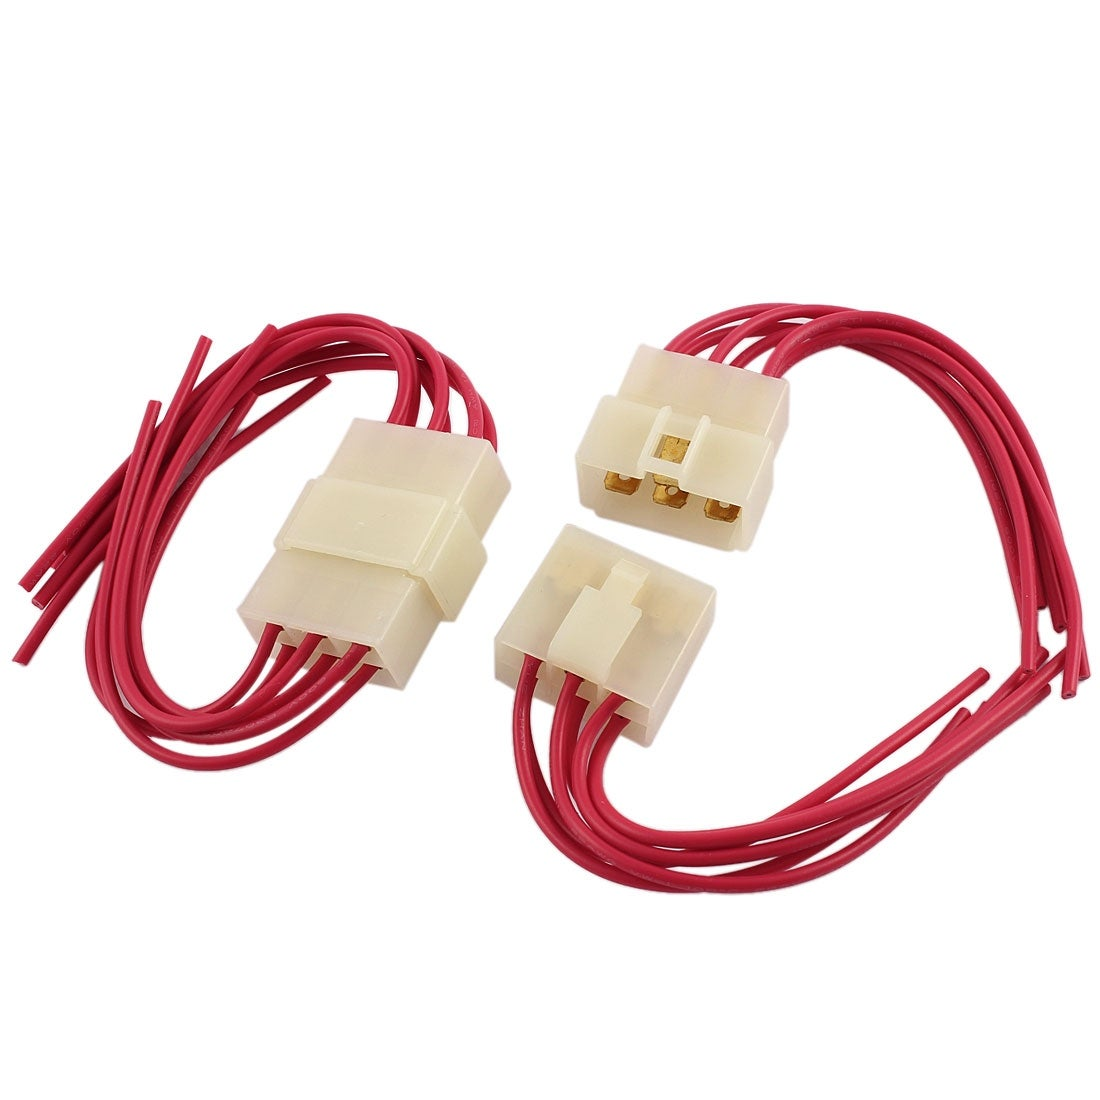 Shop 2 Pcs Car Audio Radio Stereo Wiring Harness 6 Pin Wire Adapter  Connectors - On Sale - Free Shipping On Orders Over $45 - Overstock.com -  18248691